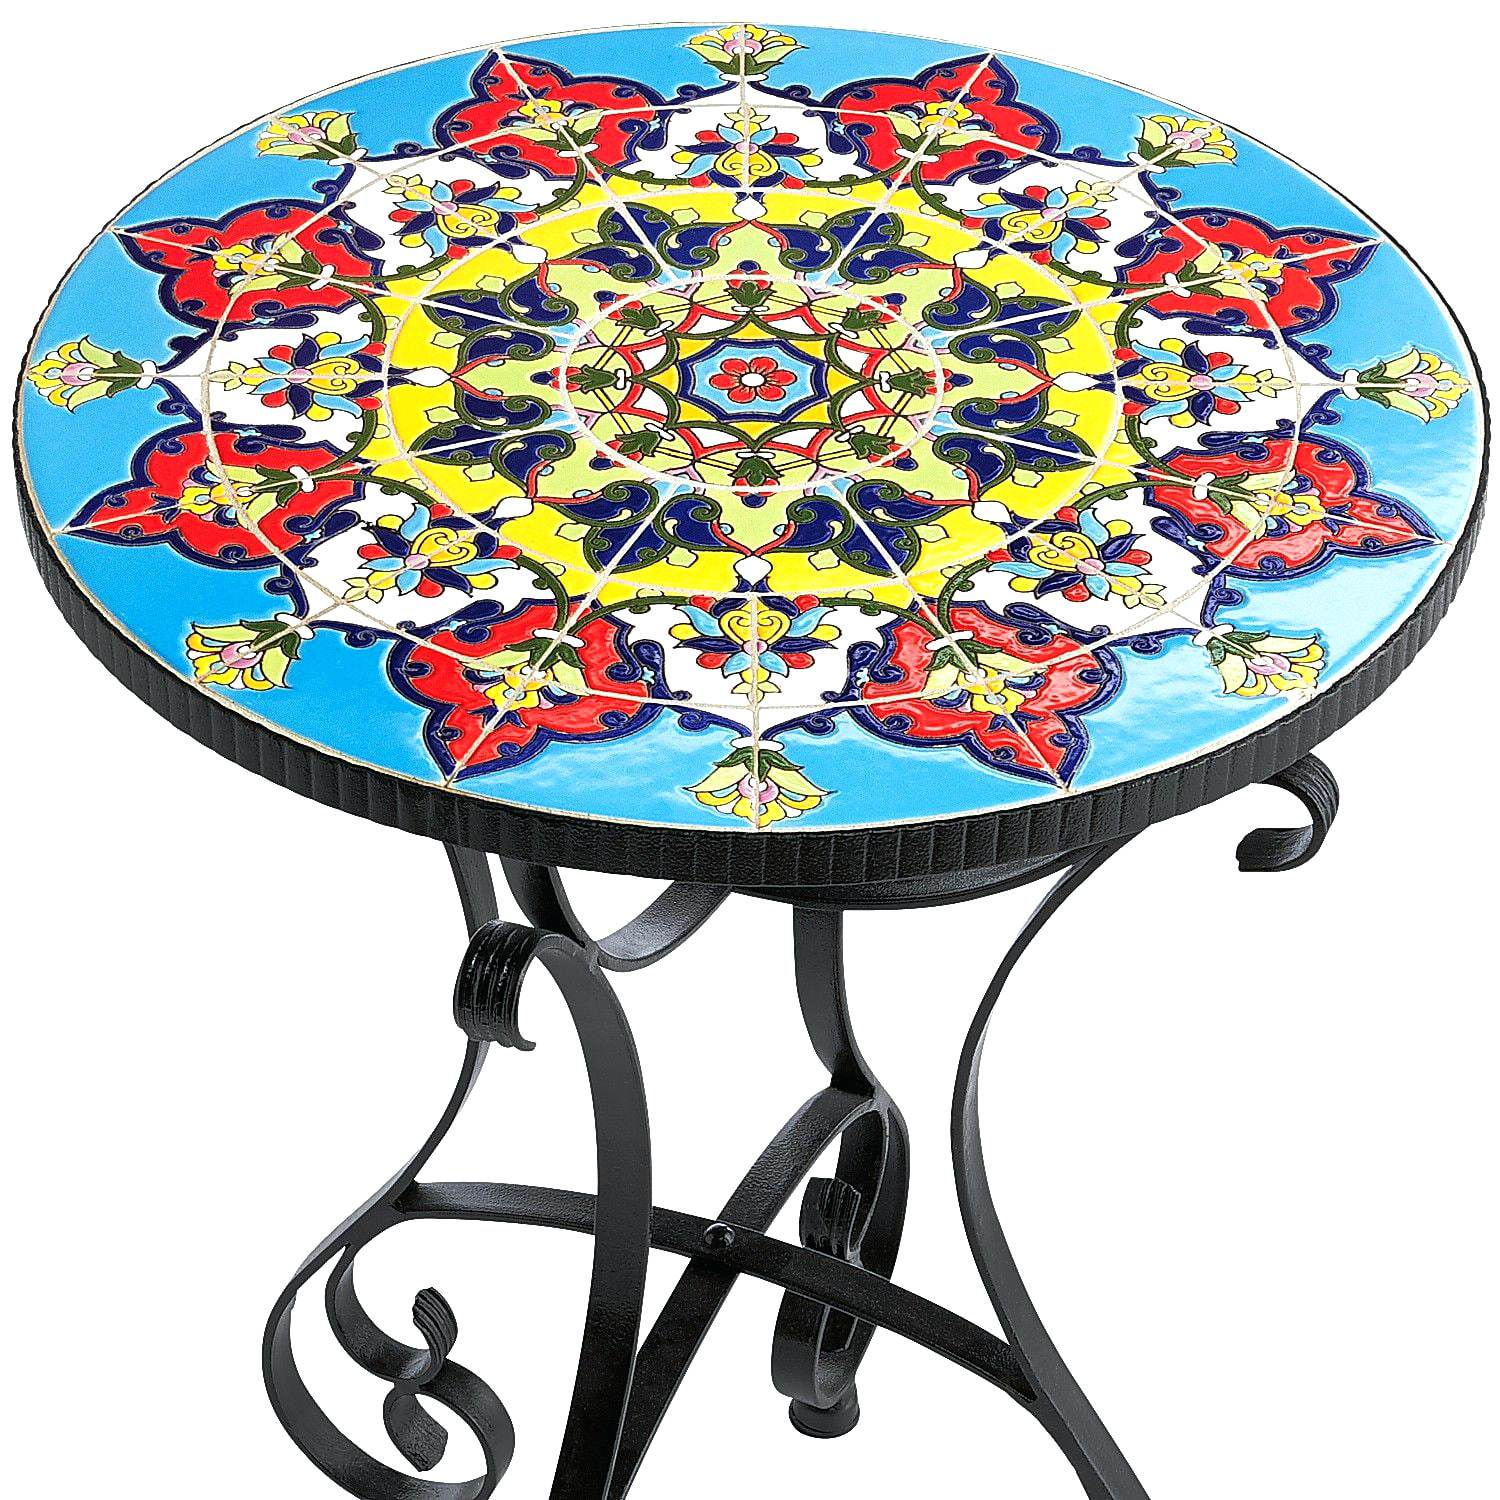 mosaic accent table vinnymo sunflower kohls dining room furniture garden stool mid century modern replica mirrored console cabinet trestle small centerpieces pedestal plant stand